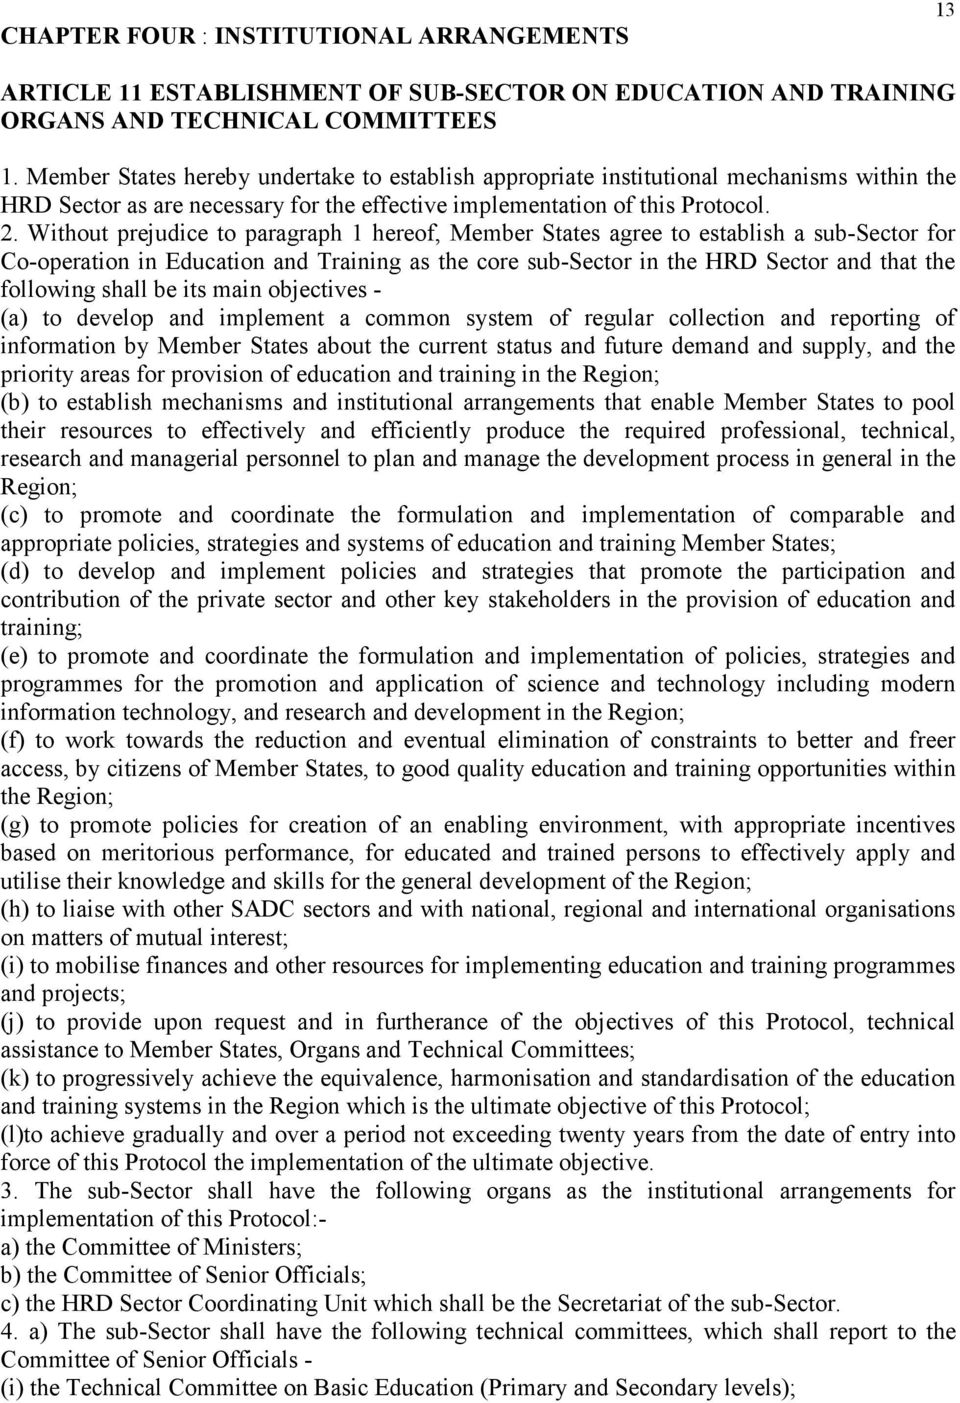 Without prejudice to paragraph 1 hereof, Member States agree to establish a sub-sector for Co-operation in Education and Training as the core sub-sector in the HRD Sector and that the following shall